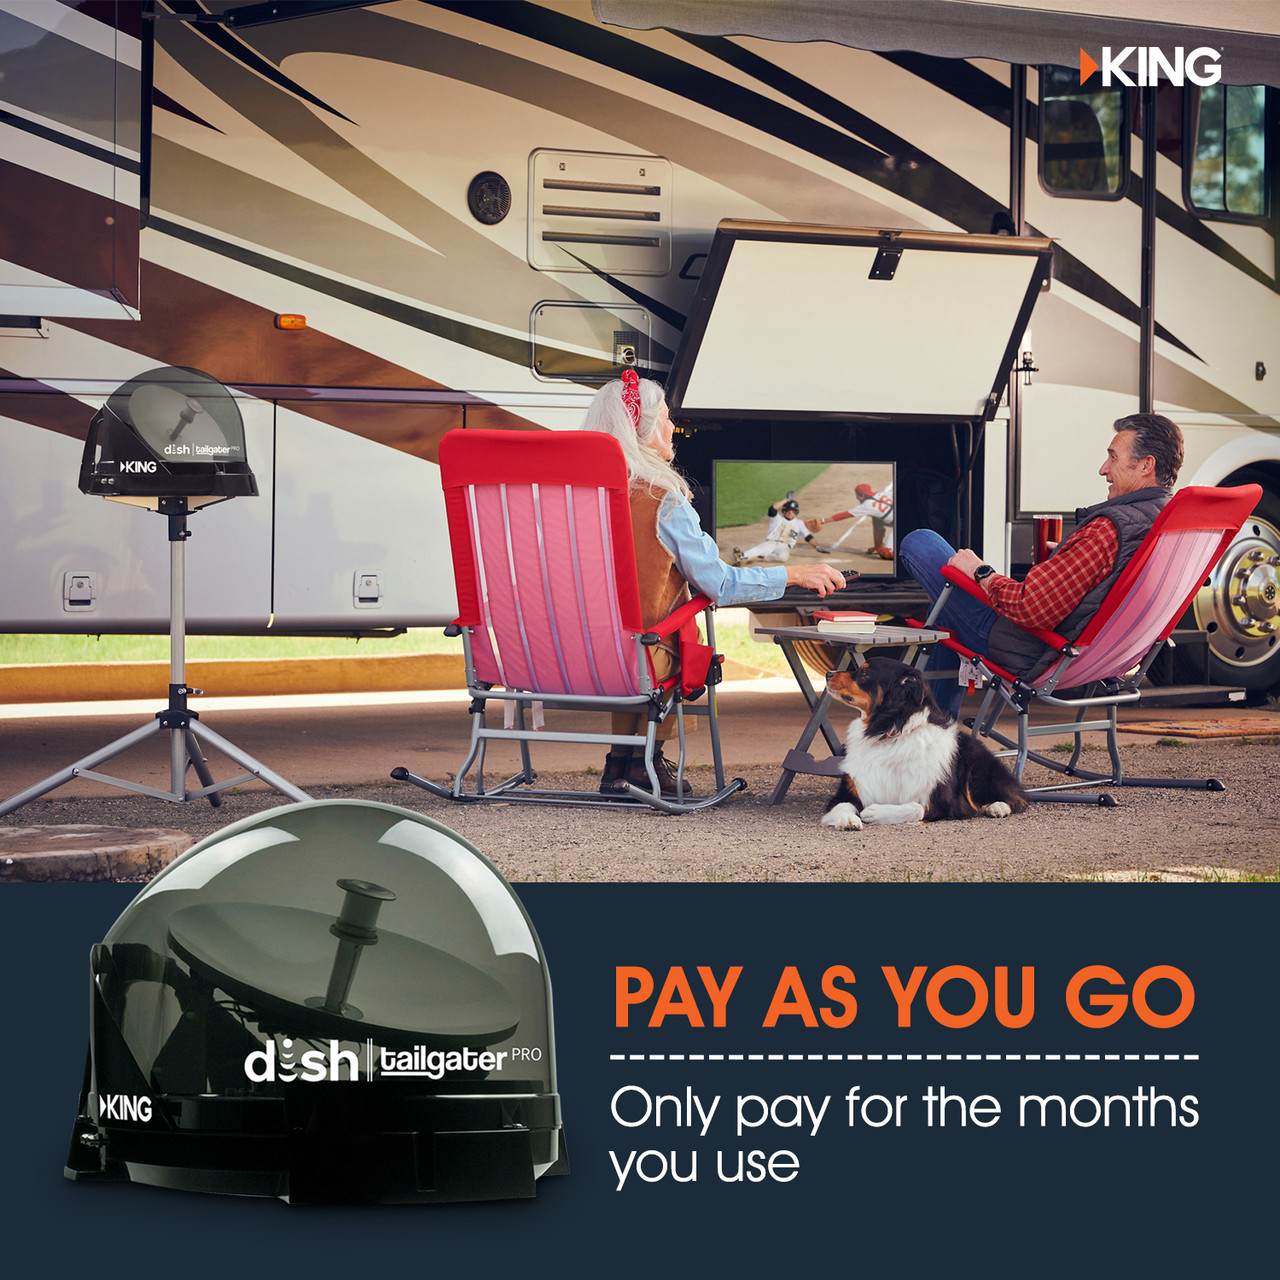 One of the best things about the DISH Tailgater Pro from KING is you only pay for what you need. Simply call DISH to purchase a pay-as-you-go monthly service to access the DISH network. If you've already got a DISH subscription at home, DISH can upgrade your plan to enable access for your KING mobile satellite dish.